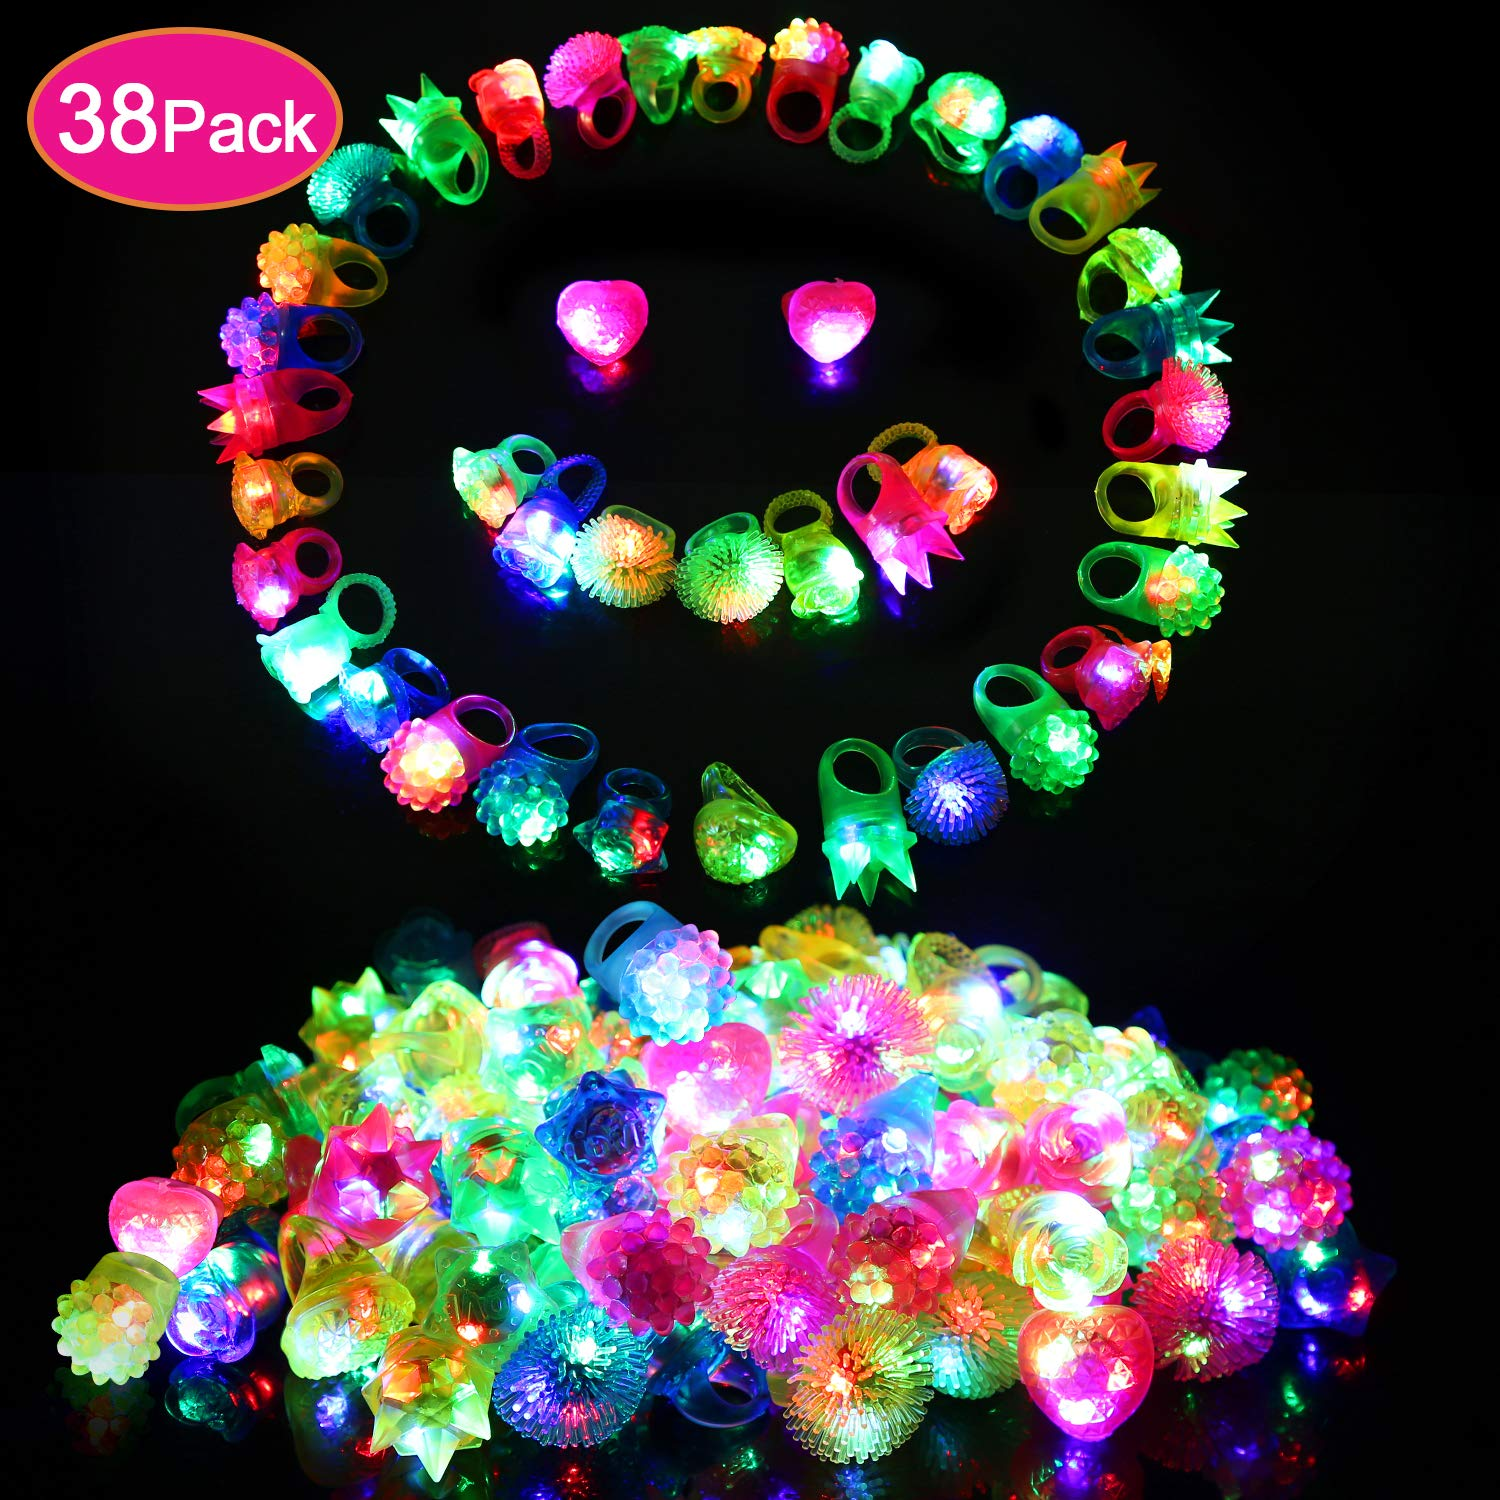 wellvo 38 Pack Light up Rings Party Favors for Kids Flashing Led Toys Glow in The Dark Party Supplies by wellvo